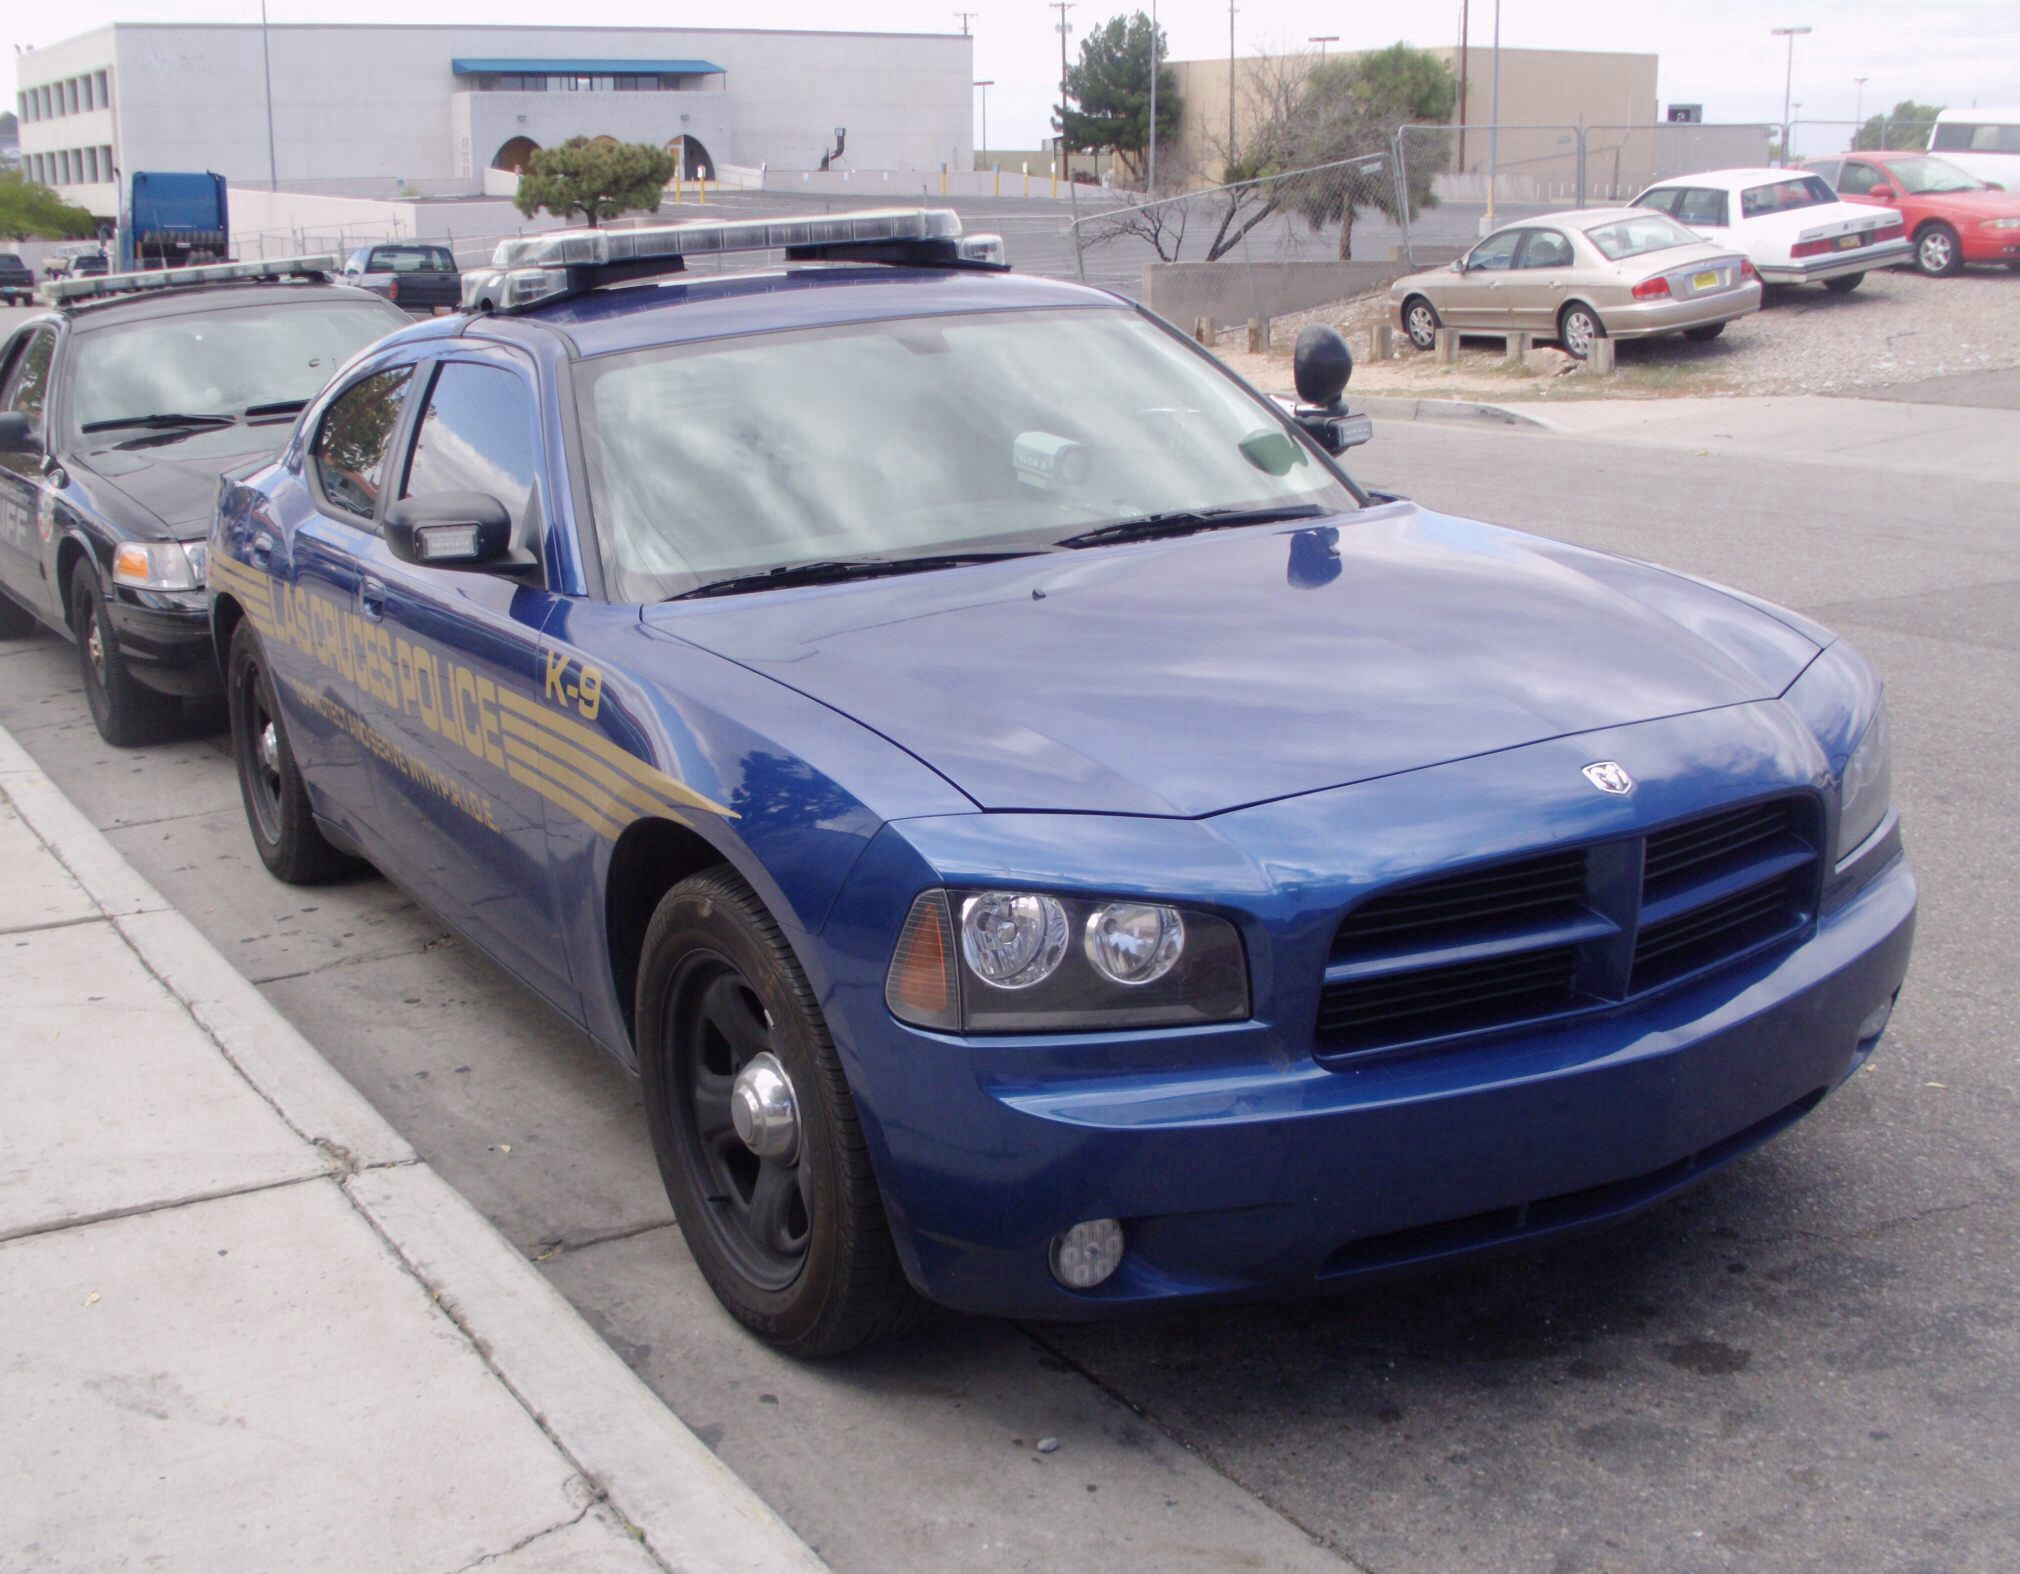 las cruces nm police police cars vehicles pinterest police police cars and law enforcement. Black Bedroom Furniture Sets. Home Design Ideas